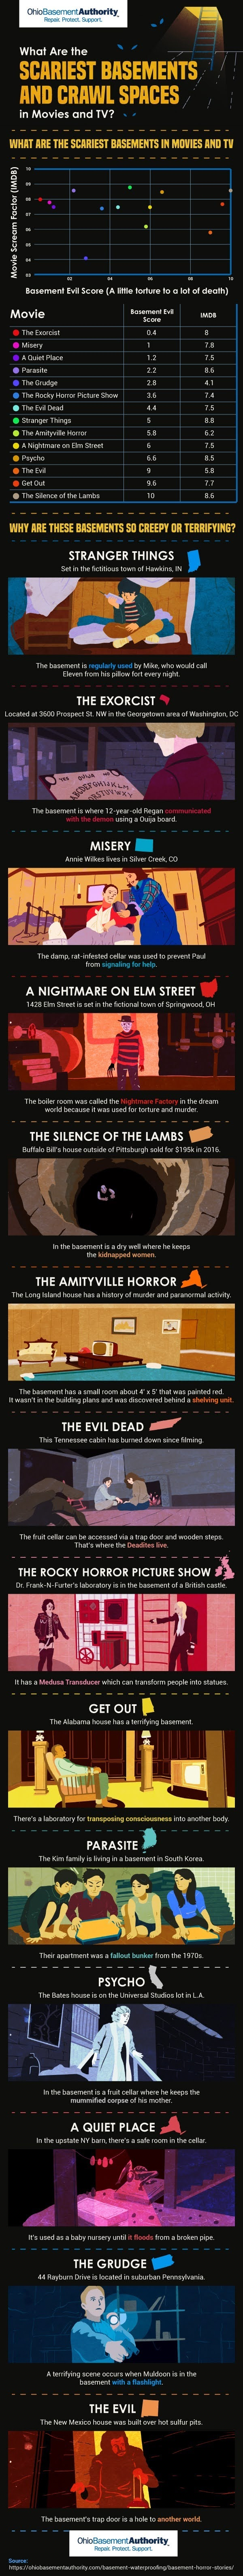 Scariest Basements in Movies & TV #infographic